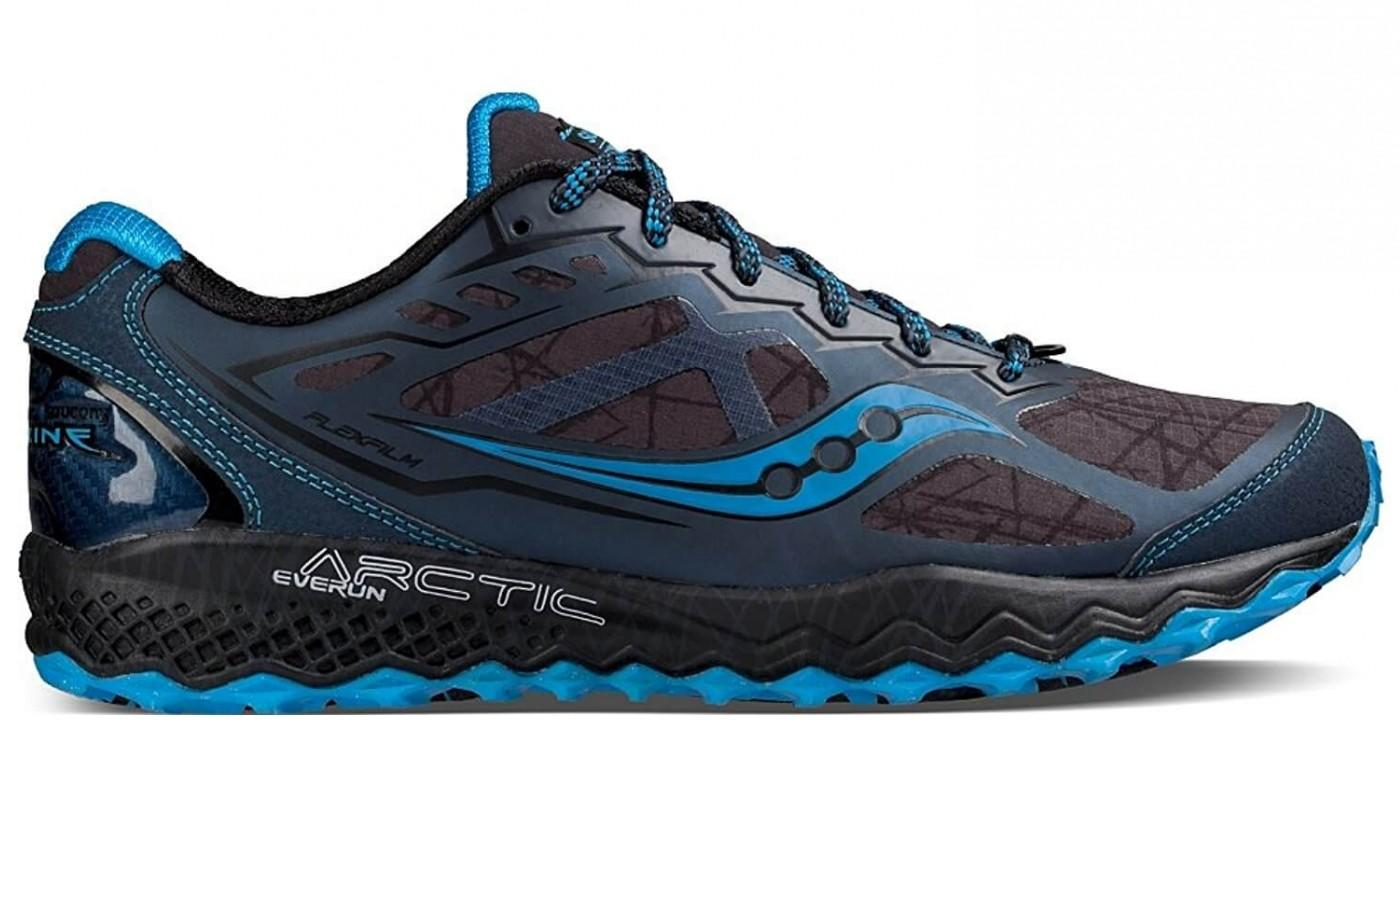 The Saucony Peregrine 6 Ice + is a tough shoe designed for winter trail running.